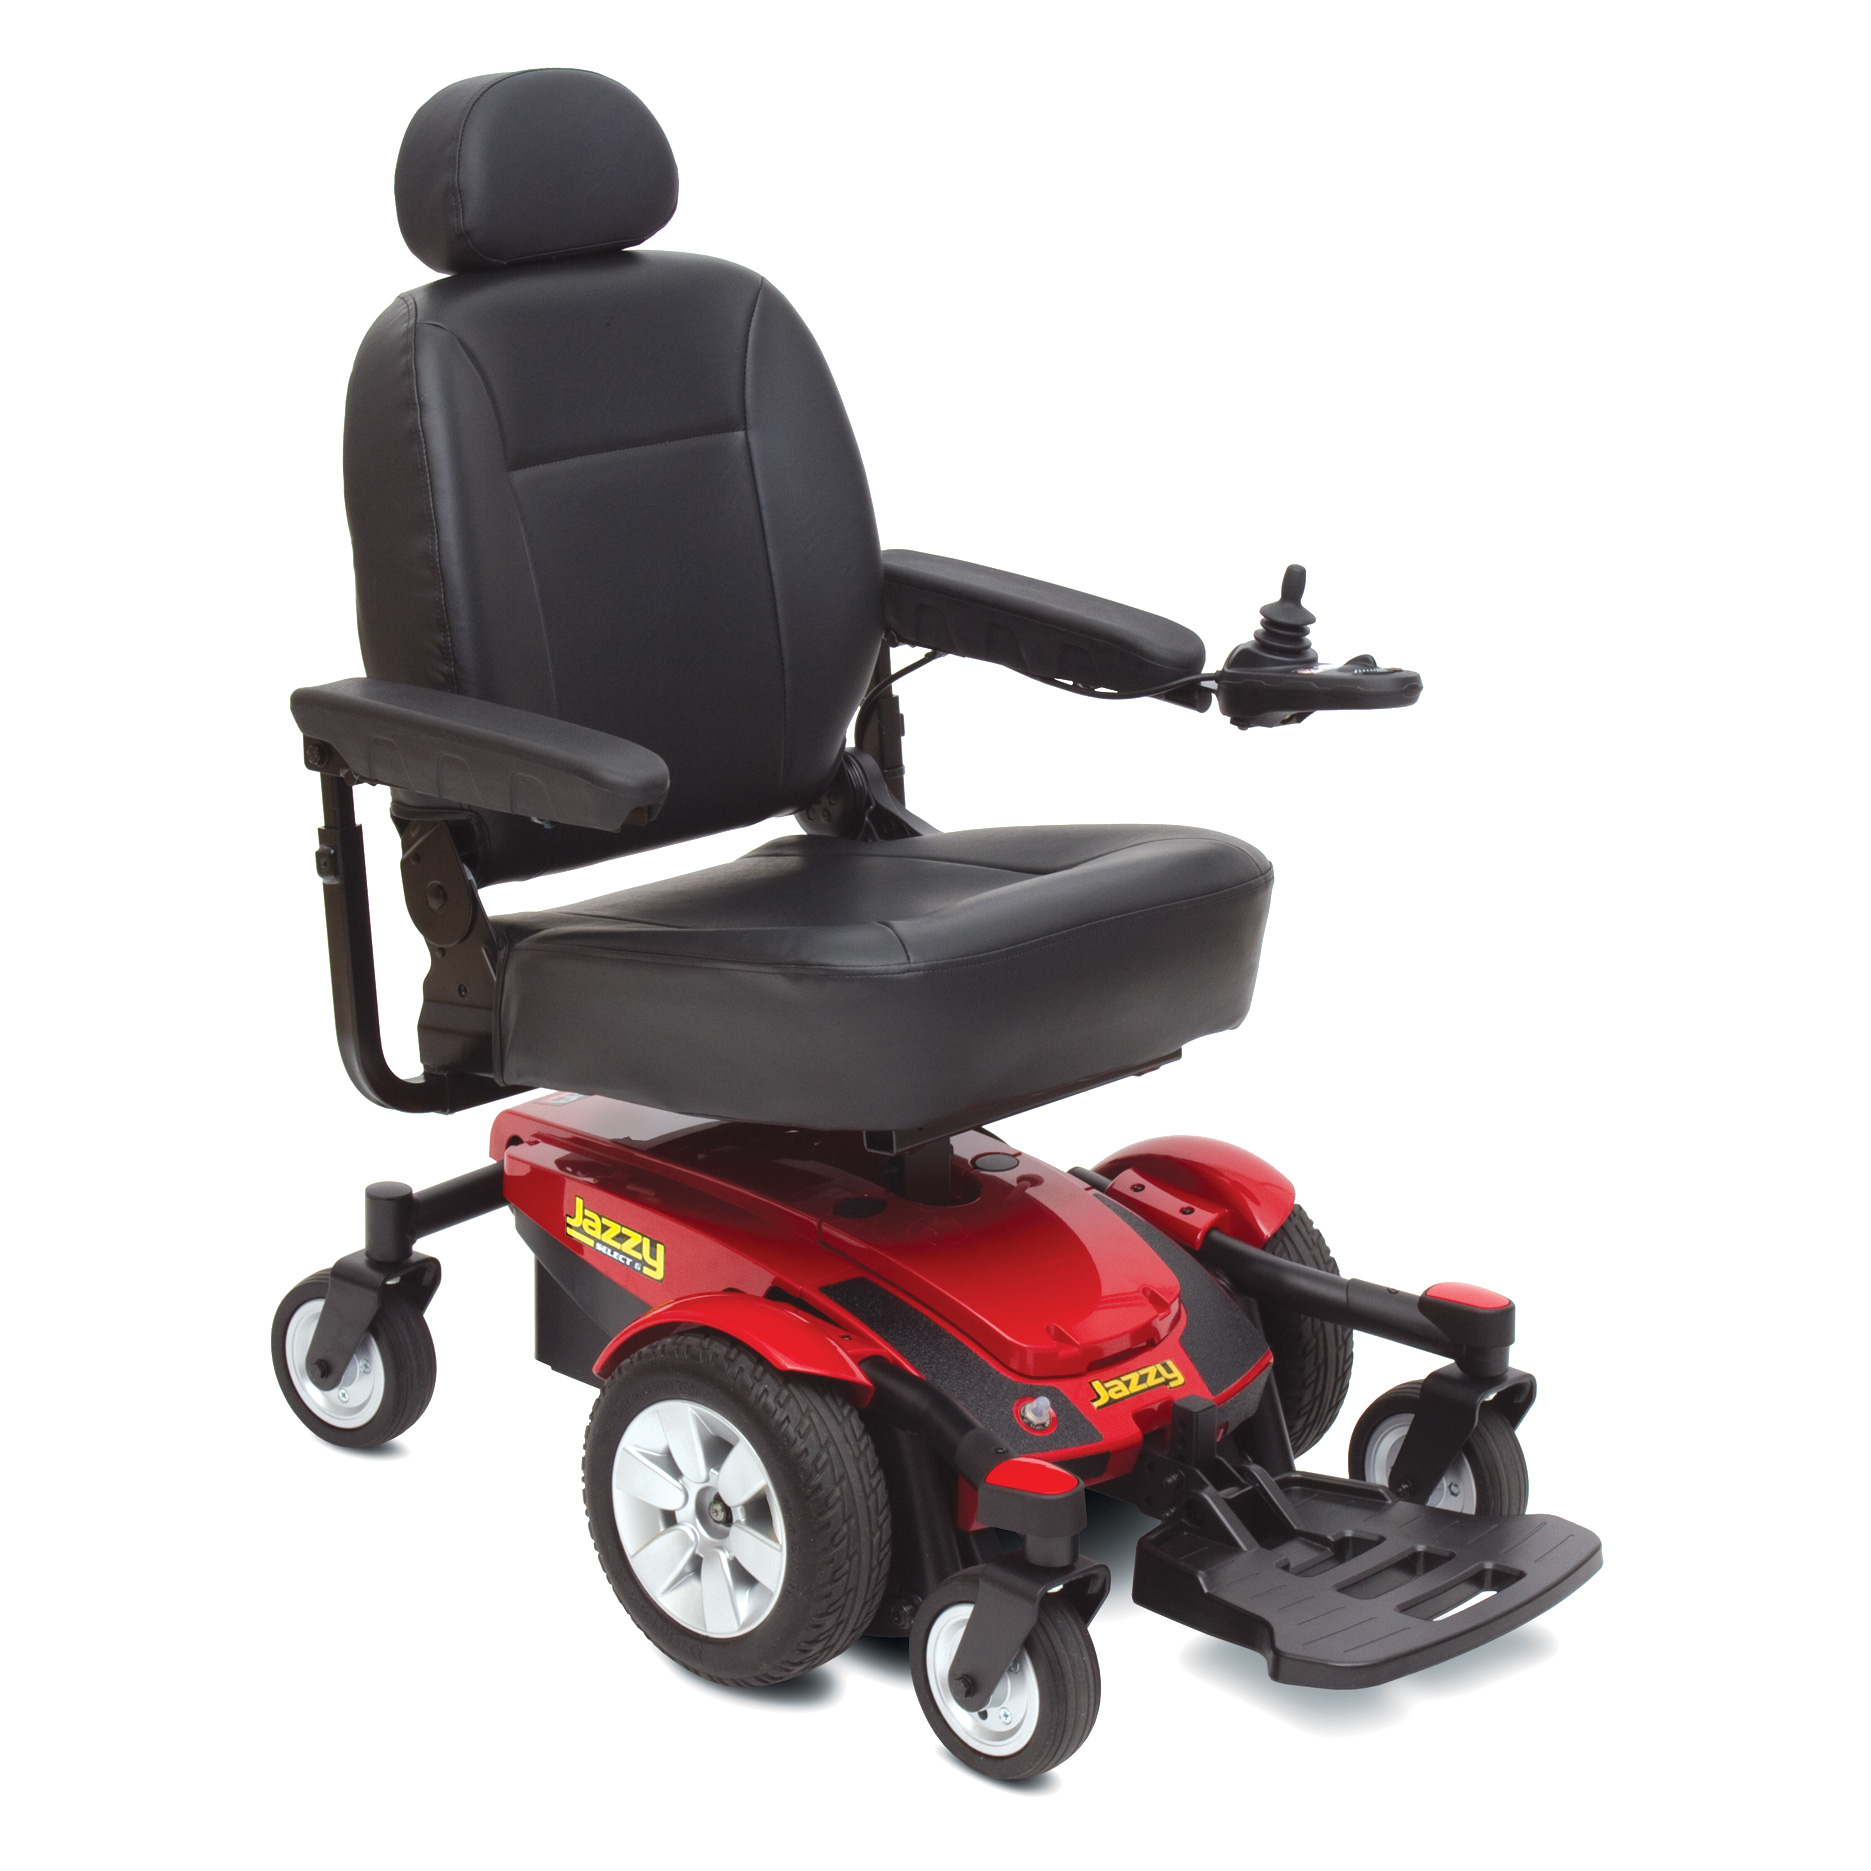 wheelchair rental new york parson chairs slipcovers patterns bigapplemobility is 1 electric scooter and